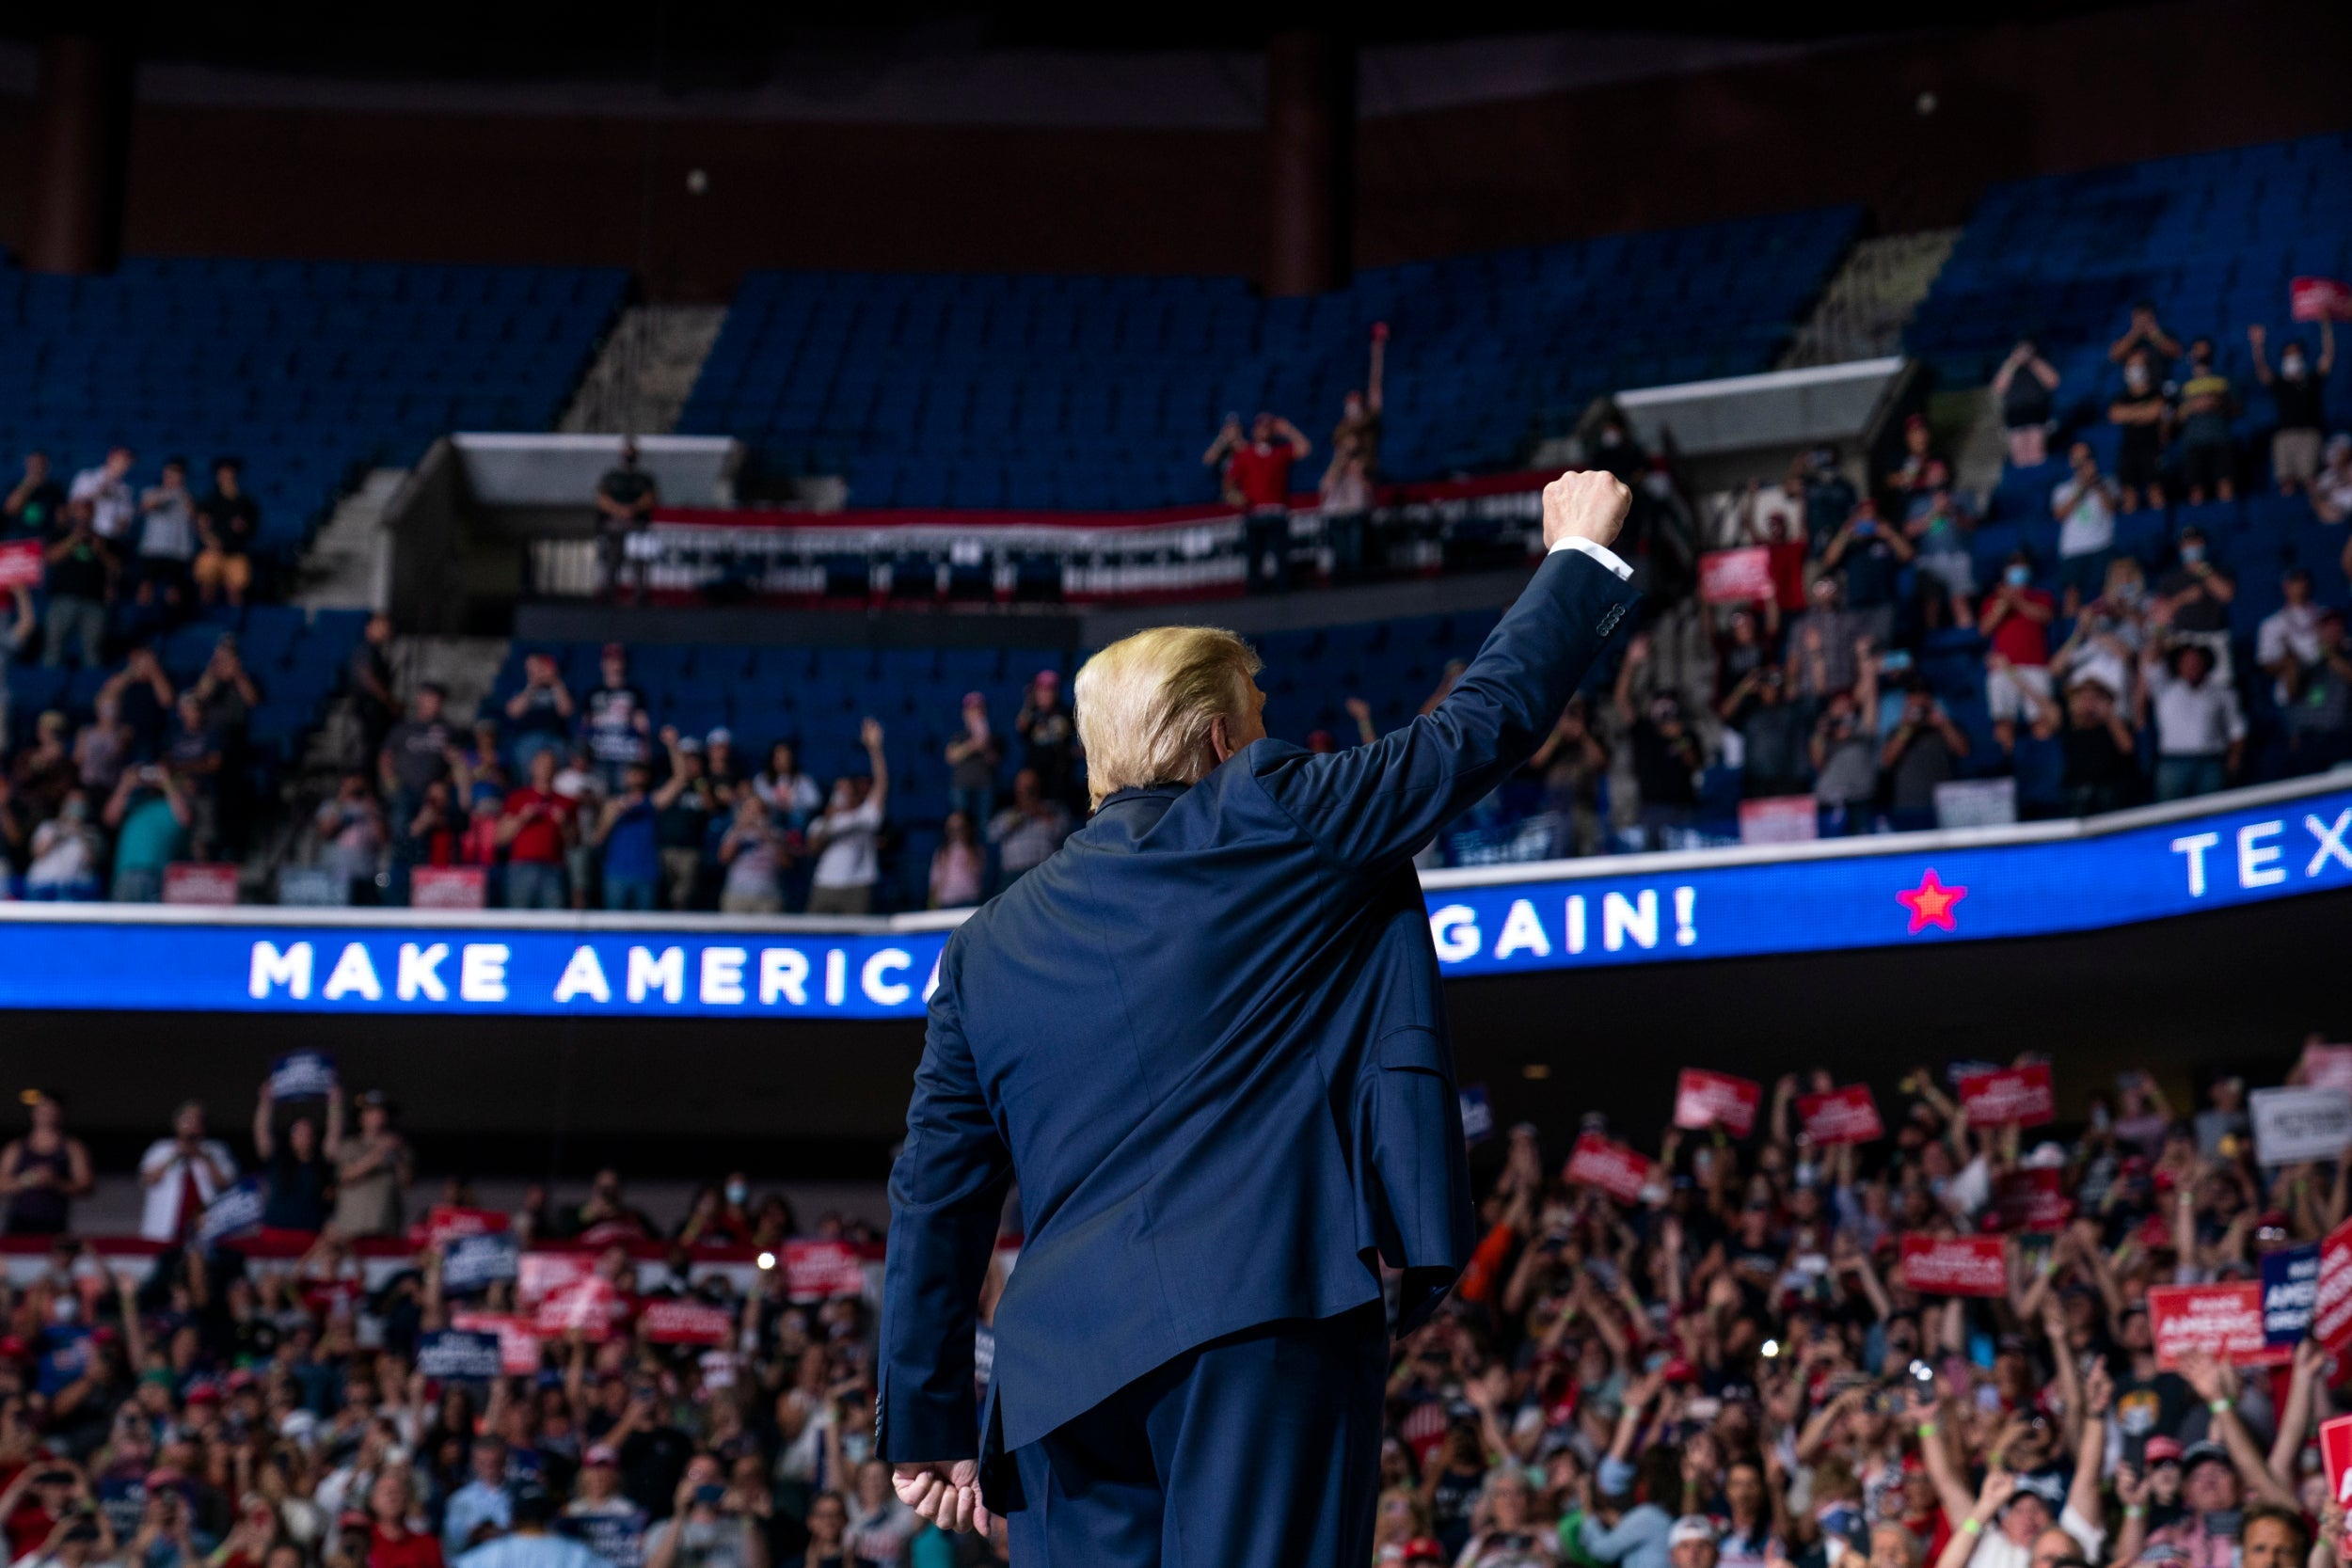 Trump campaign insists it wasn't fooled by TikTok teens and K-pop fans over low Tulsa rally turnout